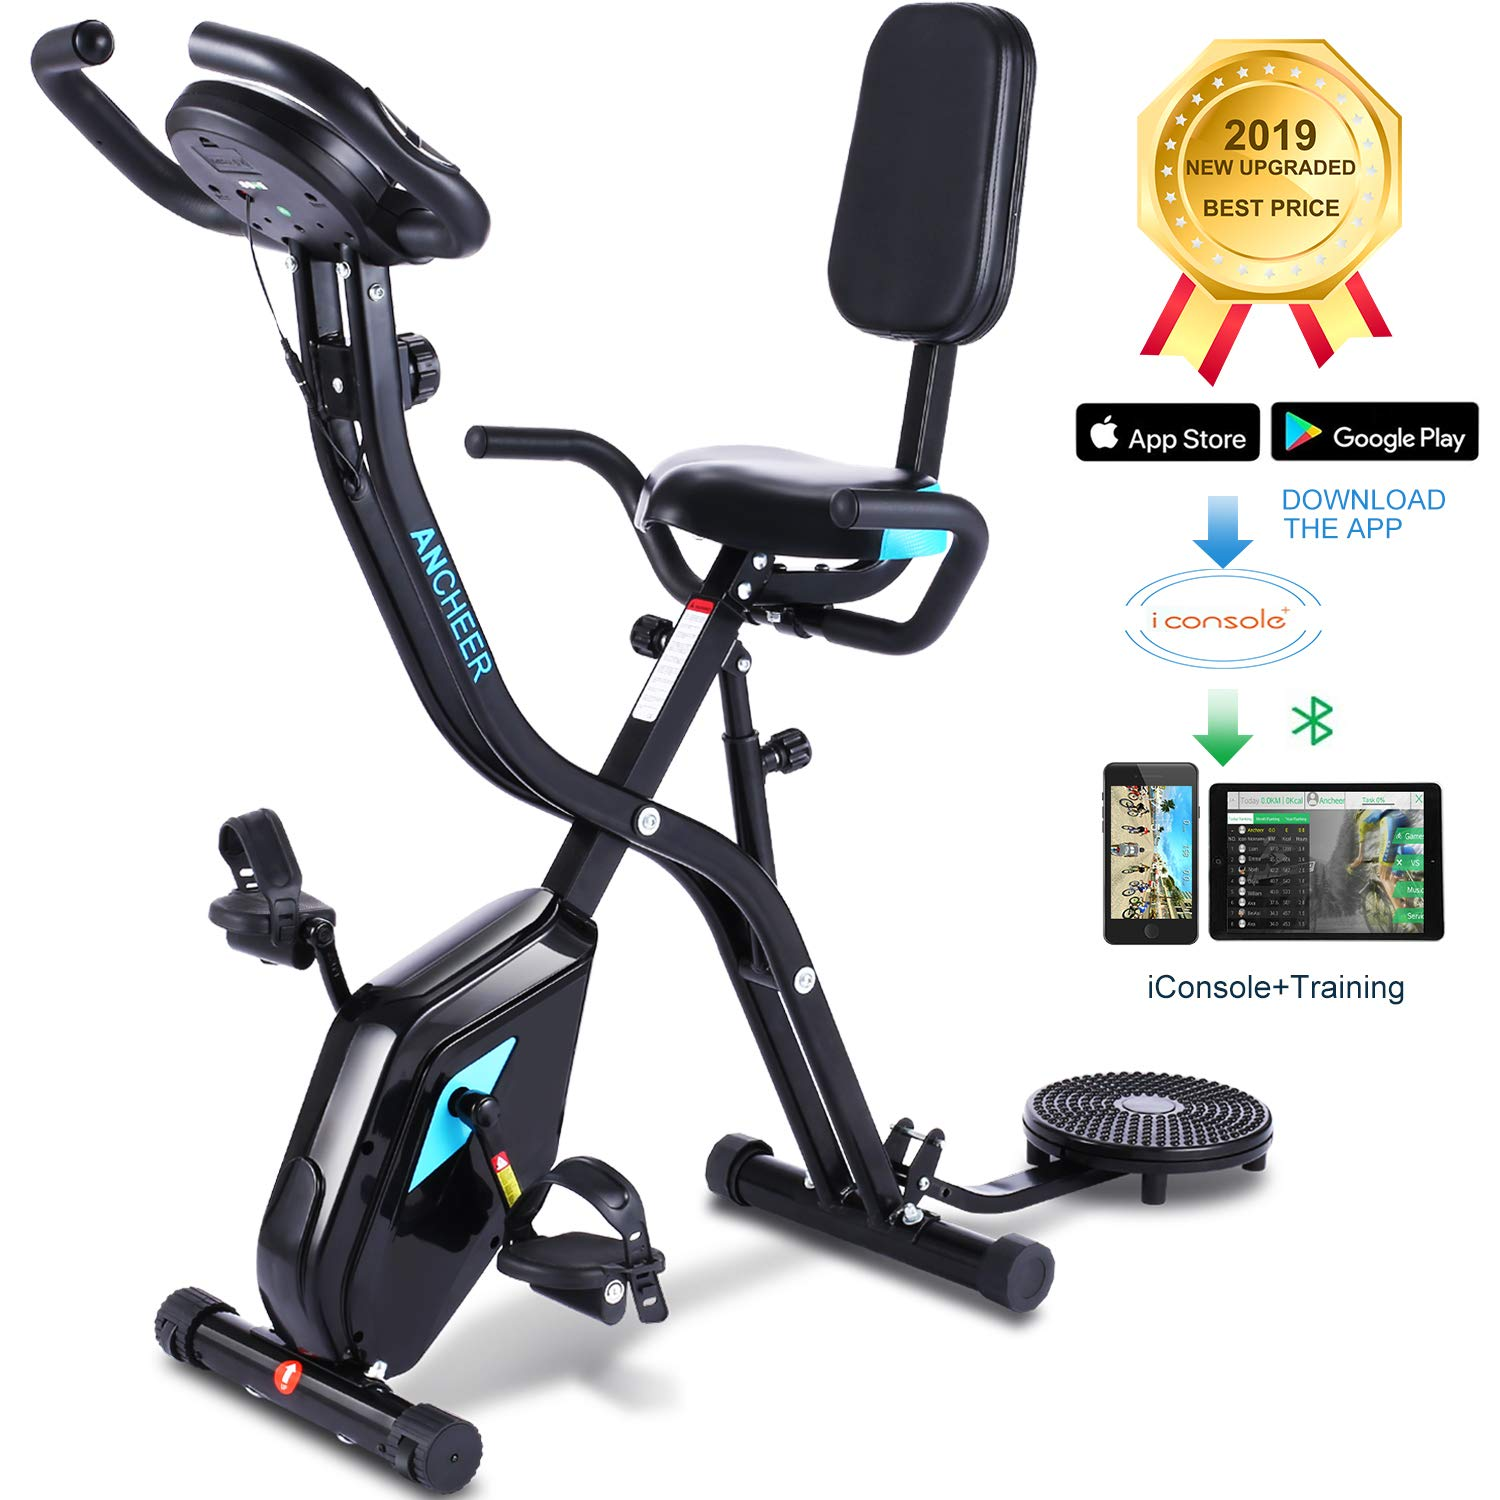 ANCHEER Folding Recumbent Exercise Bike,3-in-1 Cycle Indoor Stationary Bike,Workout Bike with 10Level Adjustable Magnetic Resistance APP Program Digital Monitor for Home Total Body Workout.